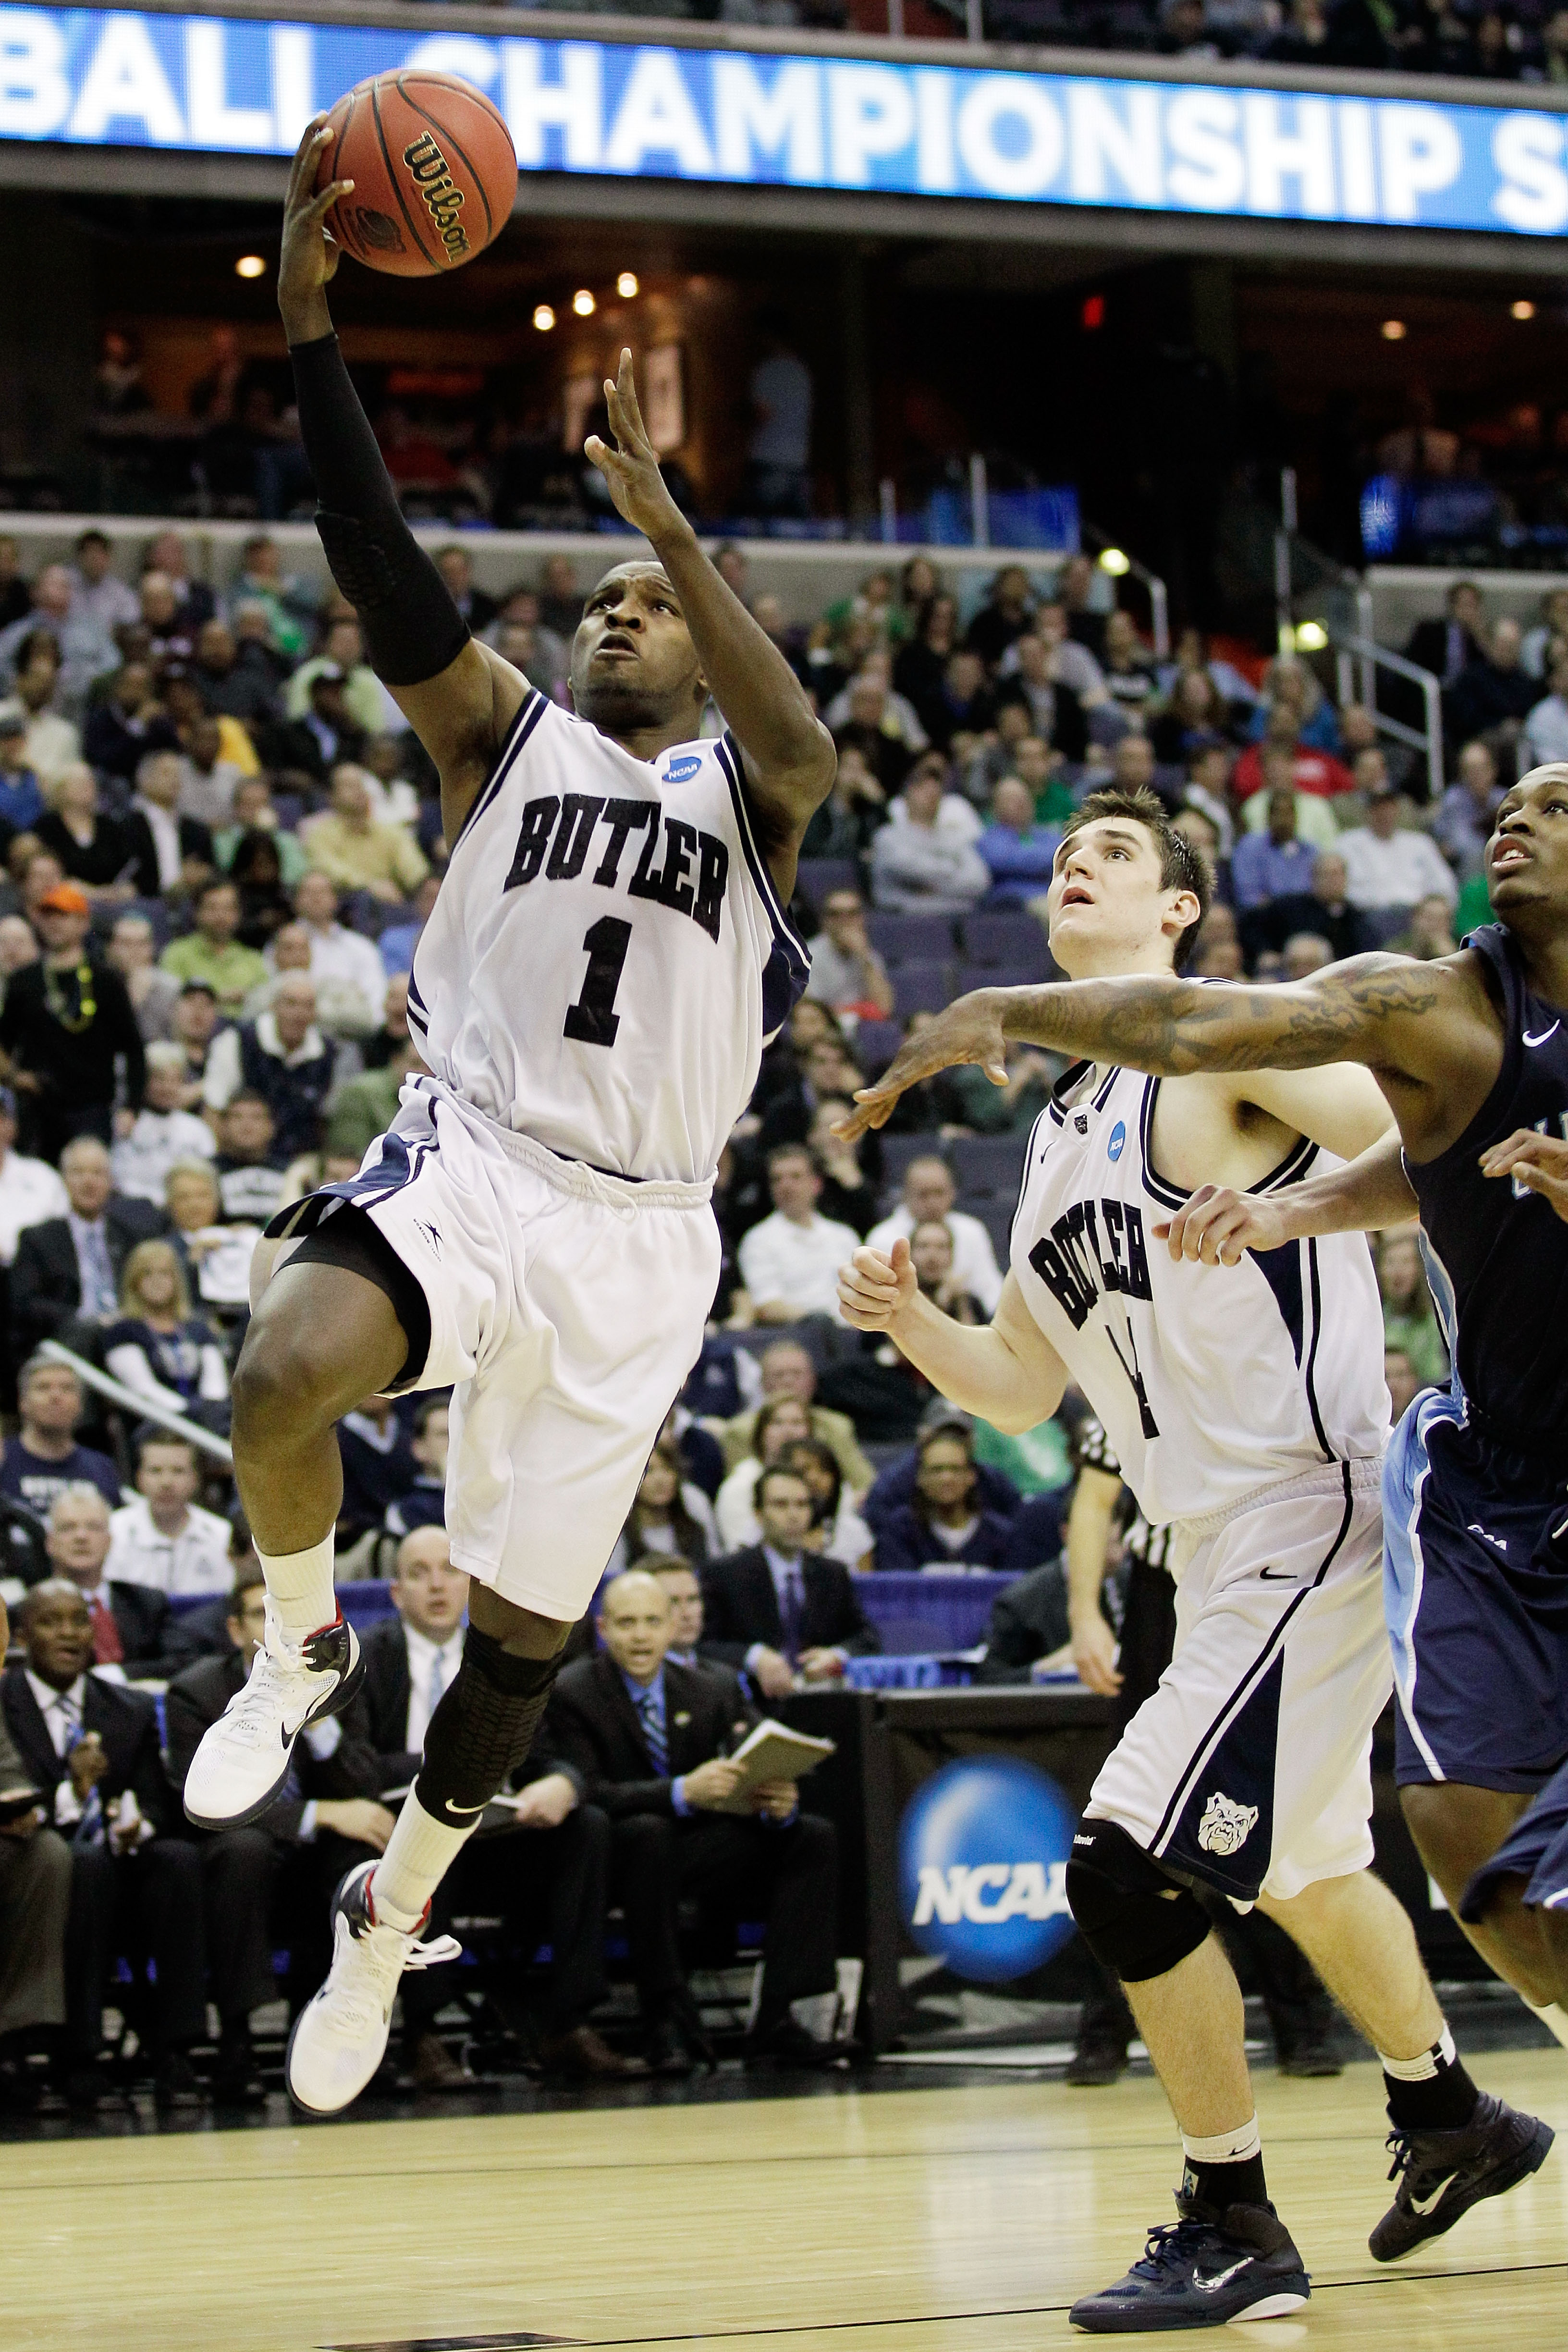 WASHINGTON - MARCH 17:  Shelvin Mack #1 of the Butler Bulldogs puts in a layup against the Old Dominion Monarchs during the second round of the 2011 NCAA men's basketball tournament at the Verizon Center on March 17, 2011 in Washington, DC.  (Photo by Rob